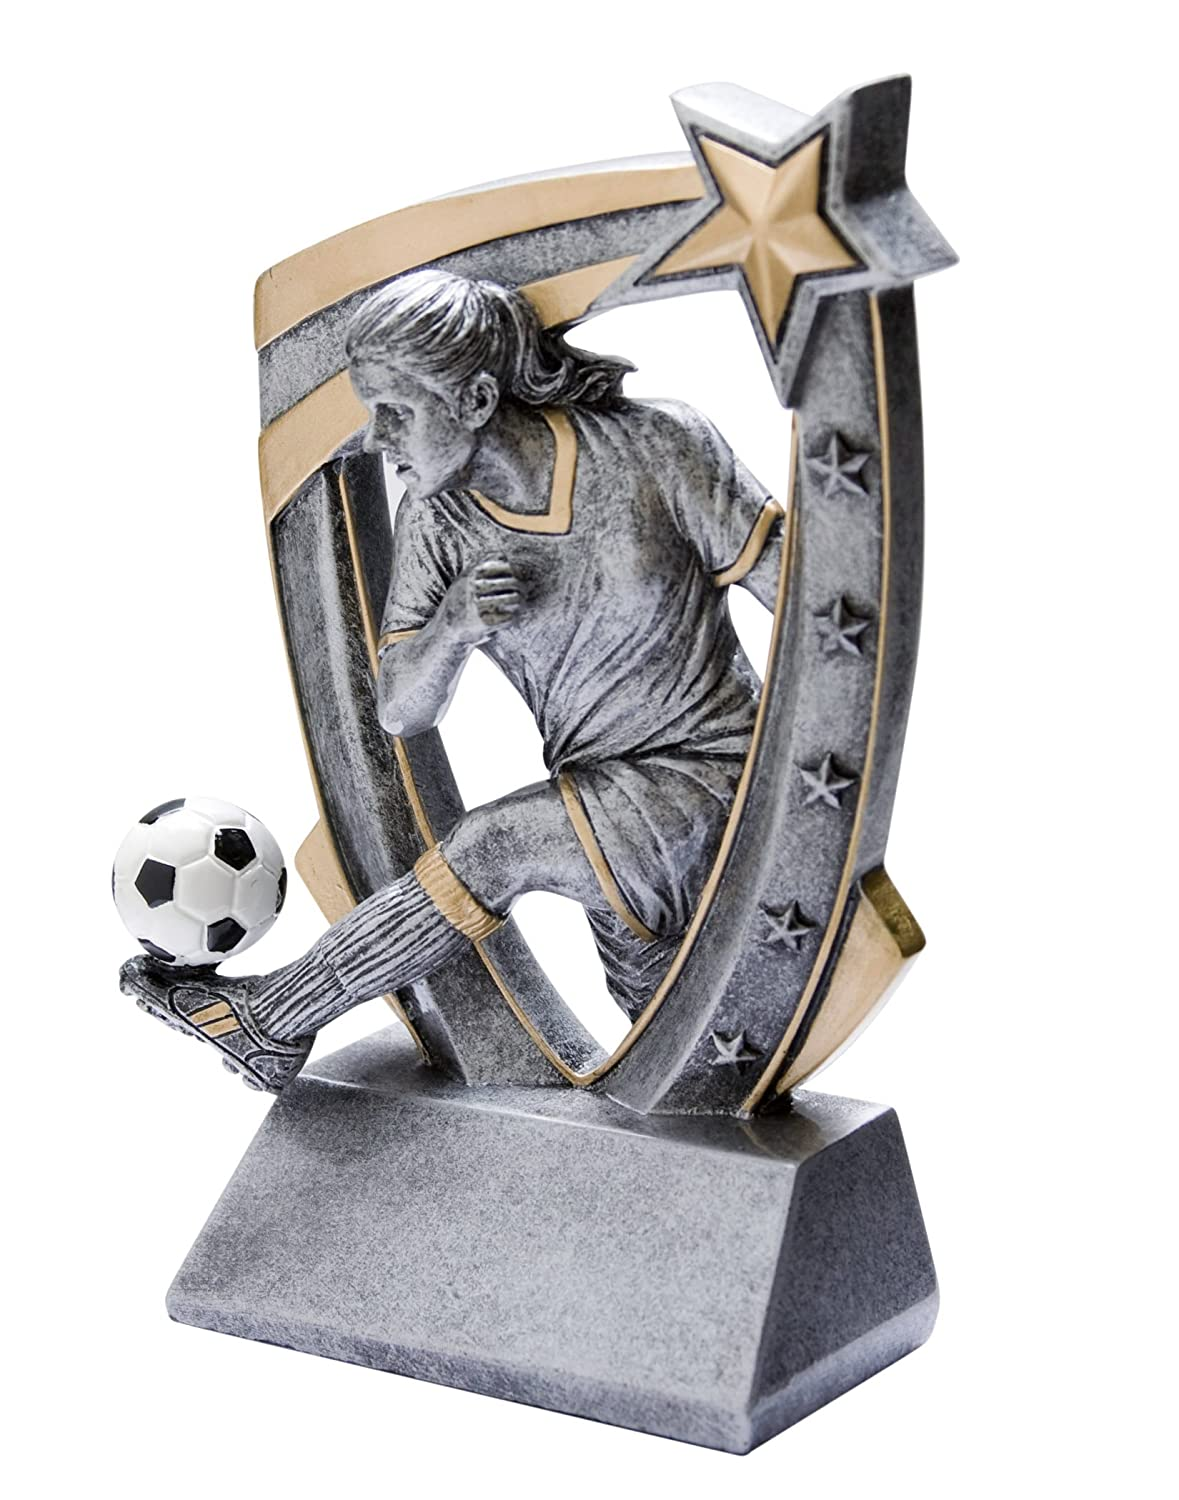 Free Engraved Plate on Request Decade Awards ⚽ Soccer Halo Trophy ⚽ Futbol Award 5 Inch Tall